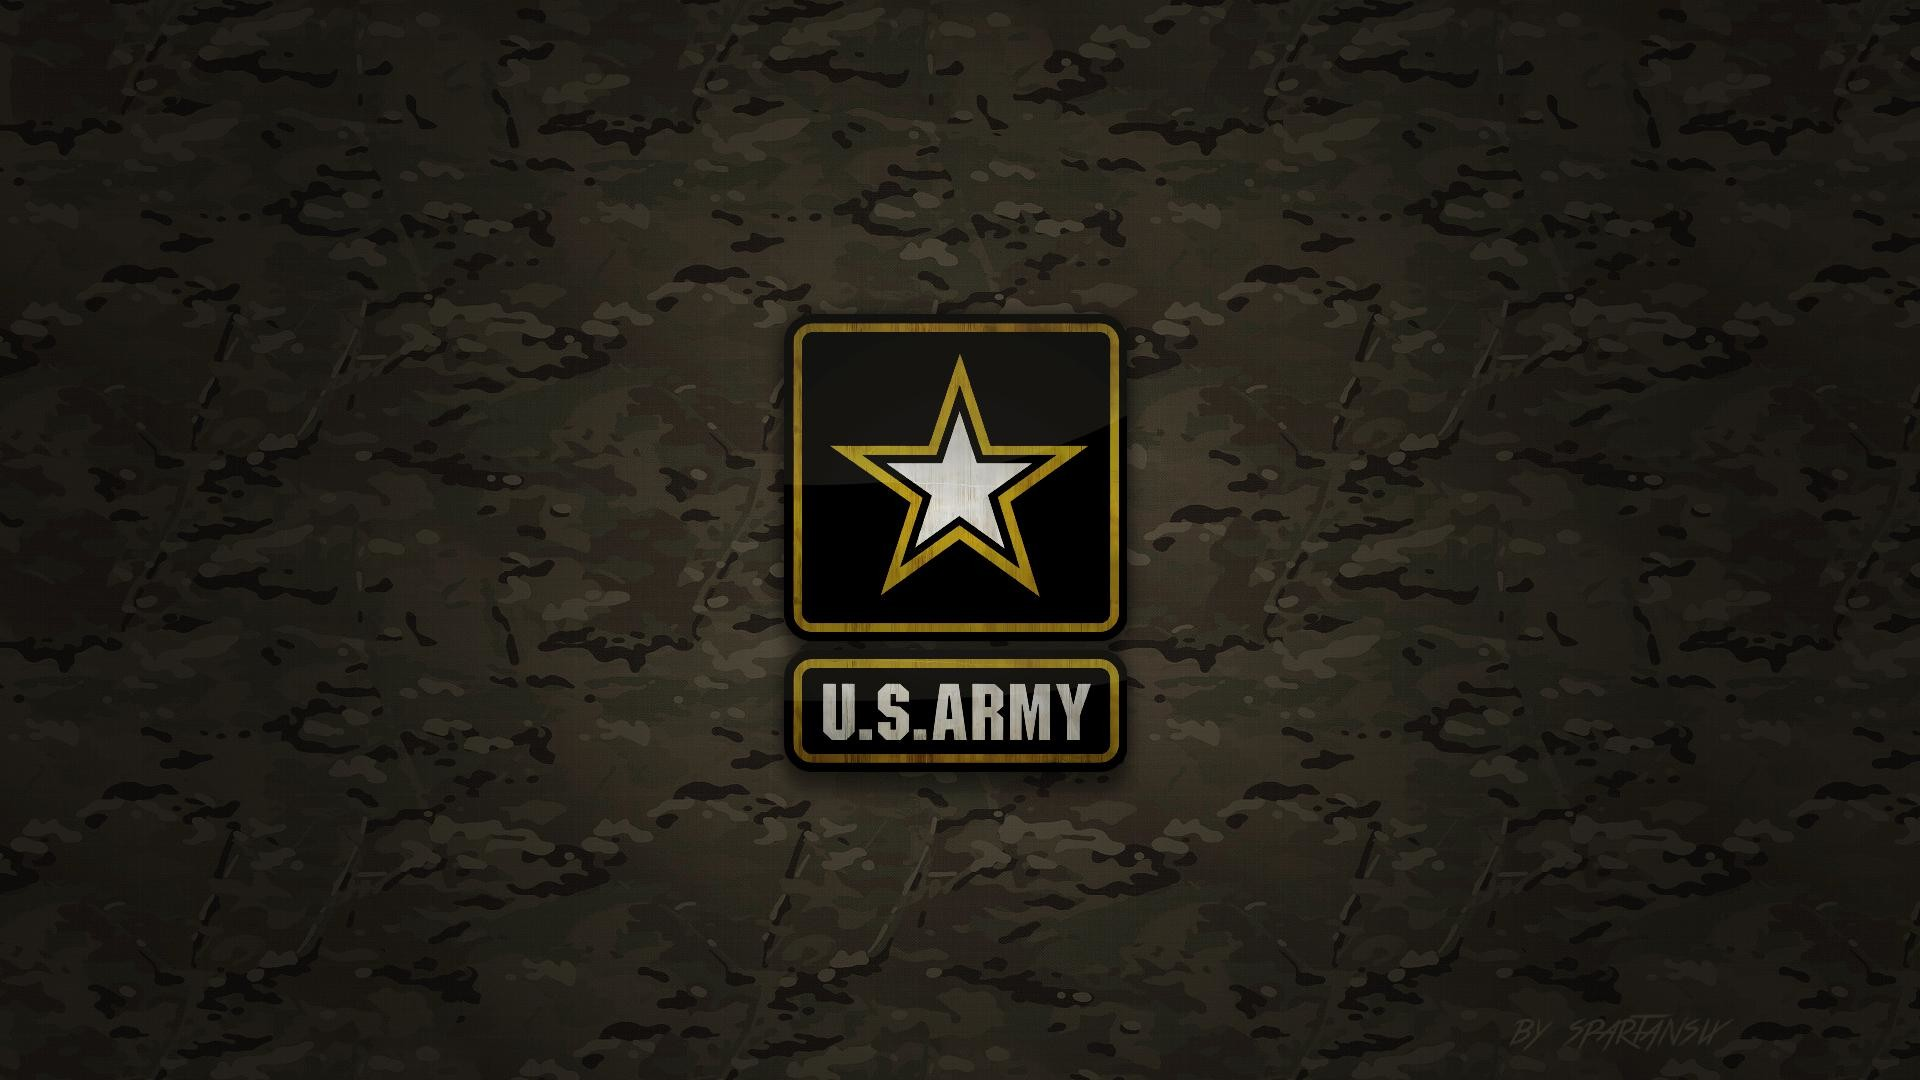 1920x1080 cool army wallpapers #382853. 1280x720 13507 us army desktop wallpaper ·  Download